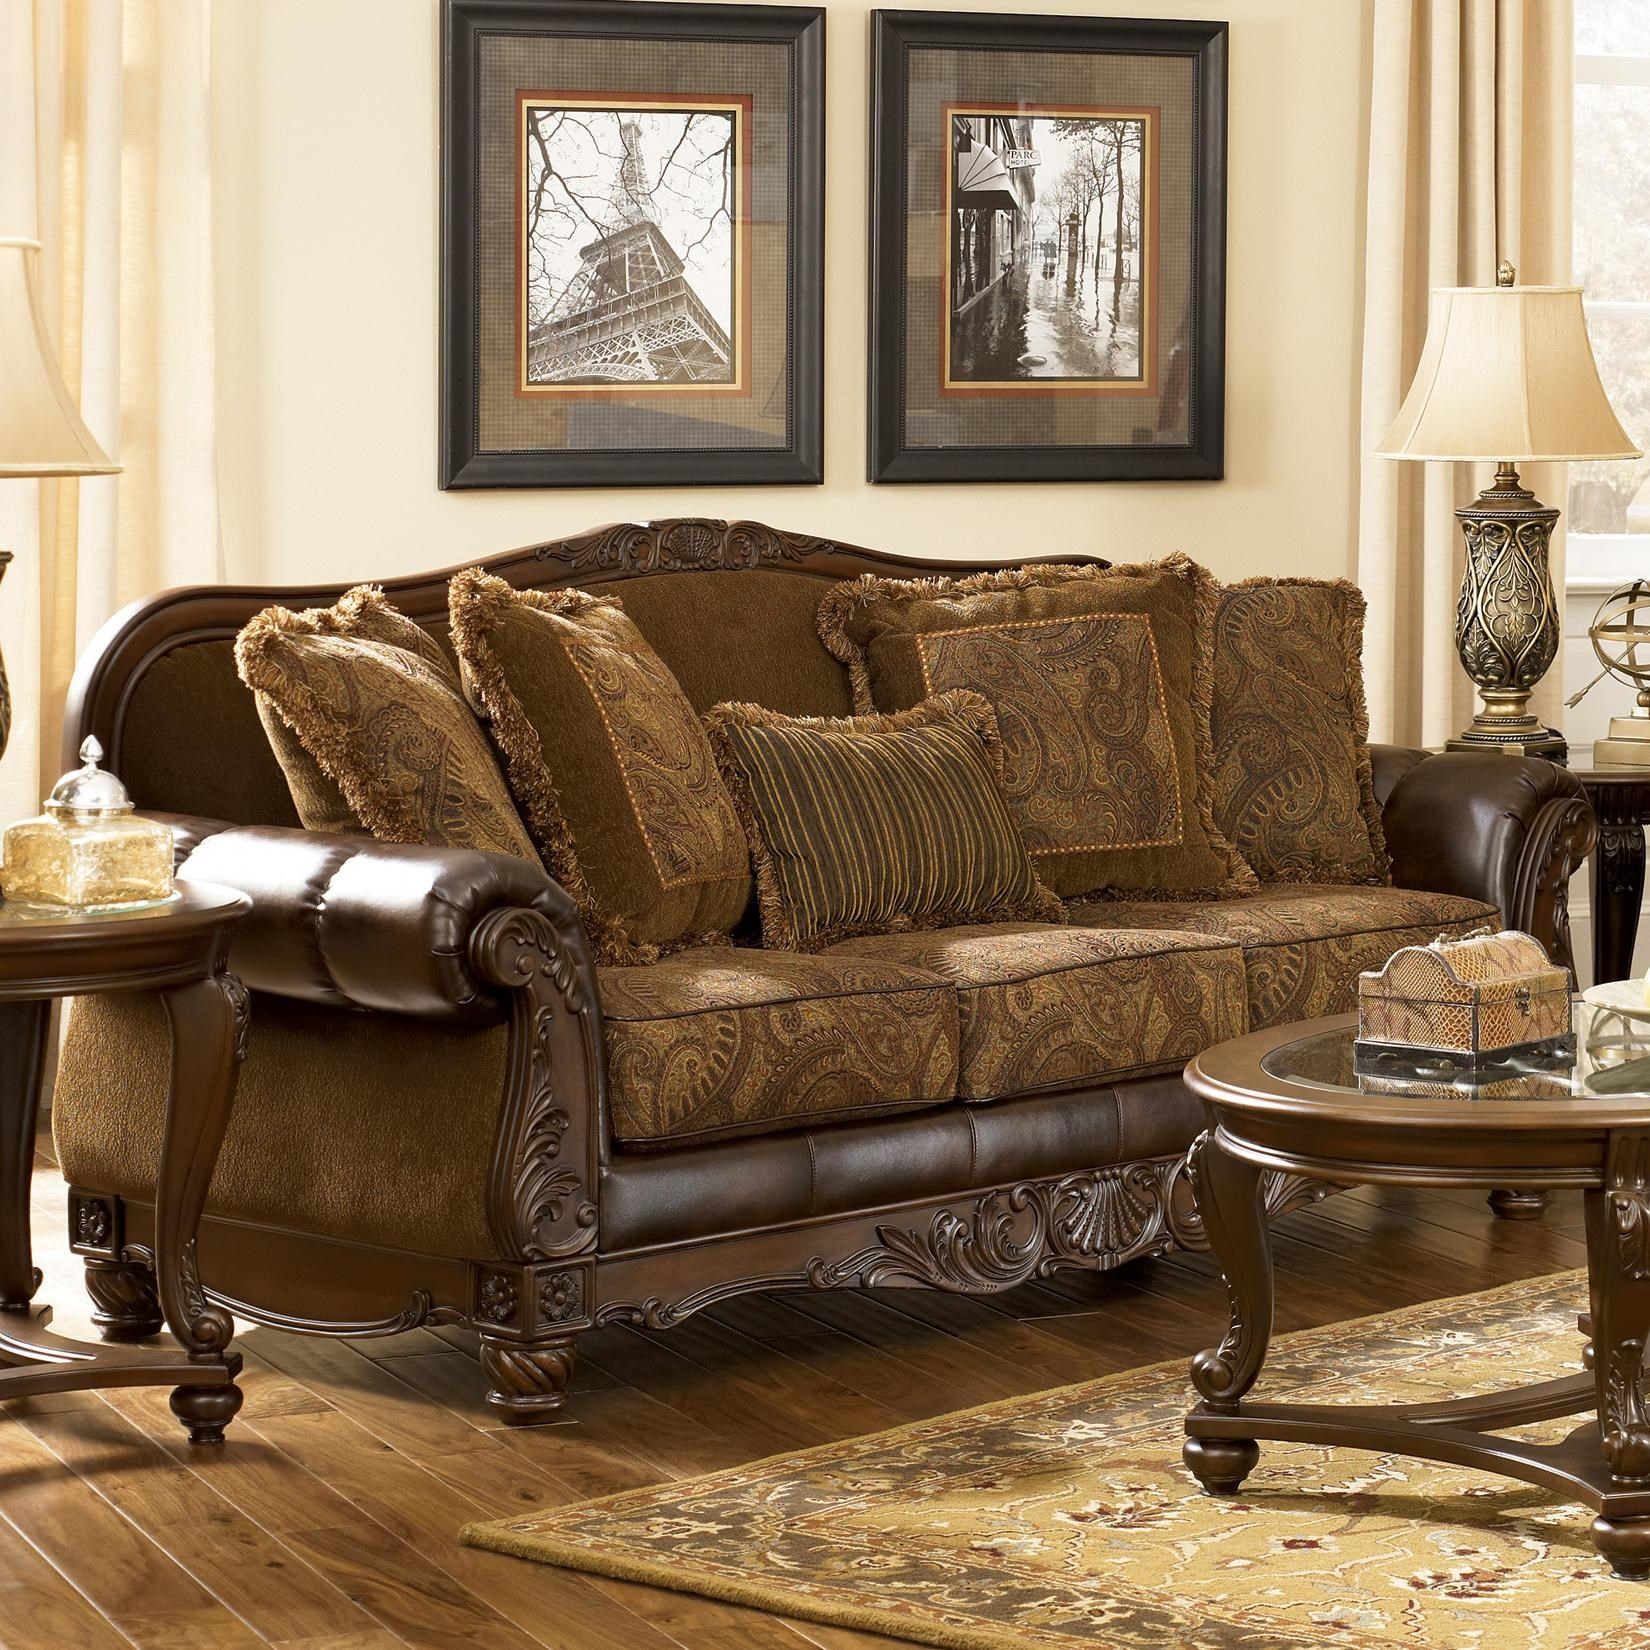 Ashley Furniture El Paso Texas #33: Signature Design By Ashley Fresco DuraBlend - Antique Traditional Stationary Sofa With Rolled Arms - Household Furniture - Sofa